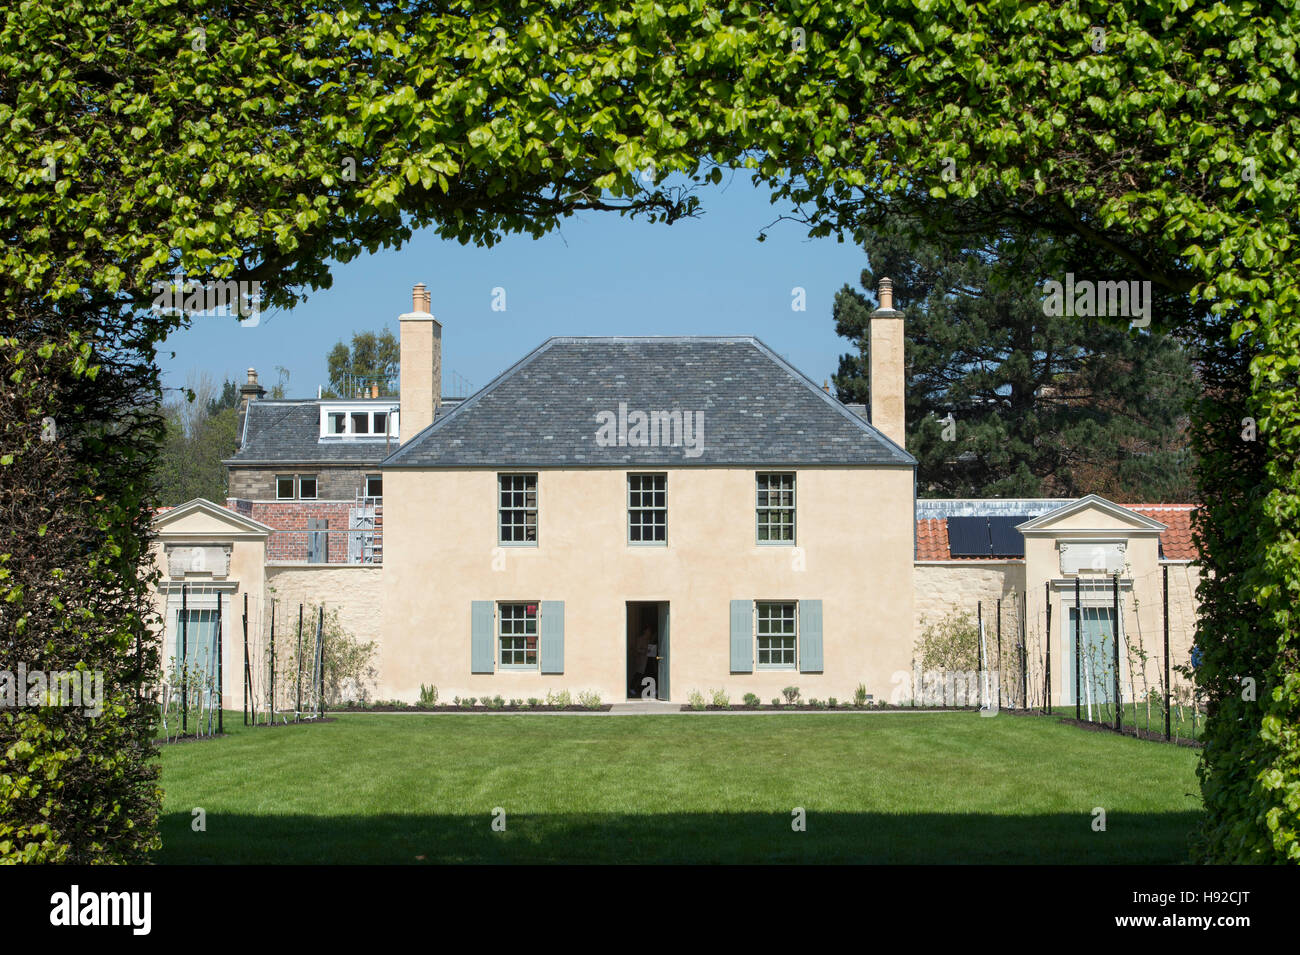 The newly restored Georgian Cottage within the grounds of the Royal Botanic gardens, Edinburgh. - Stock Image